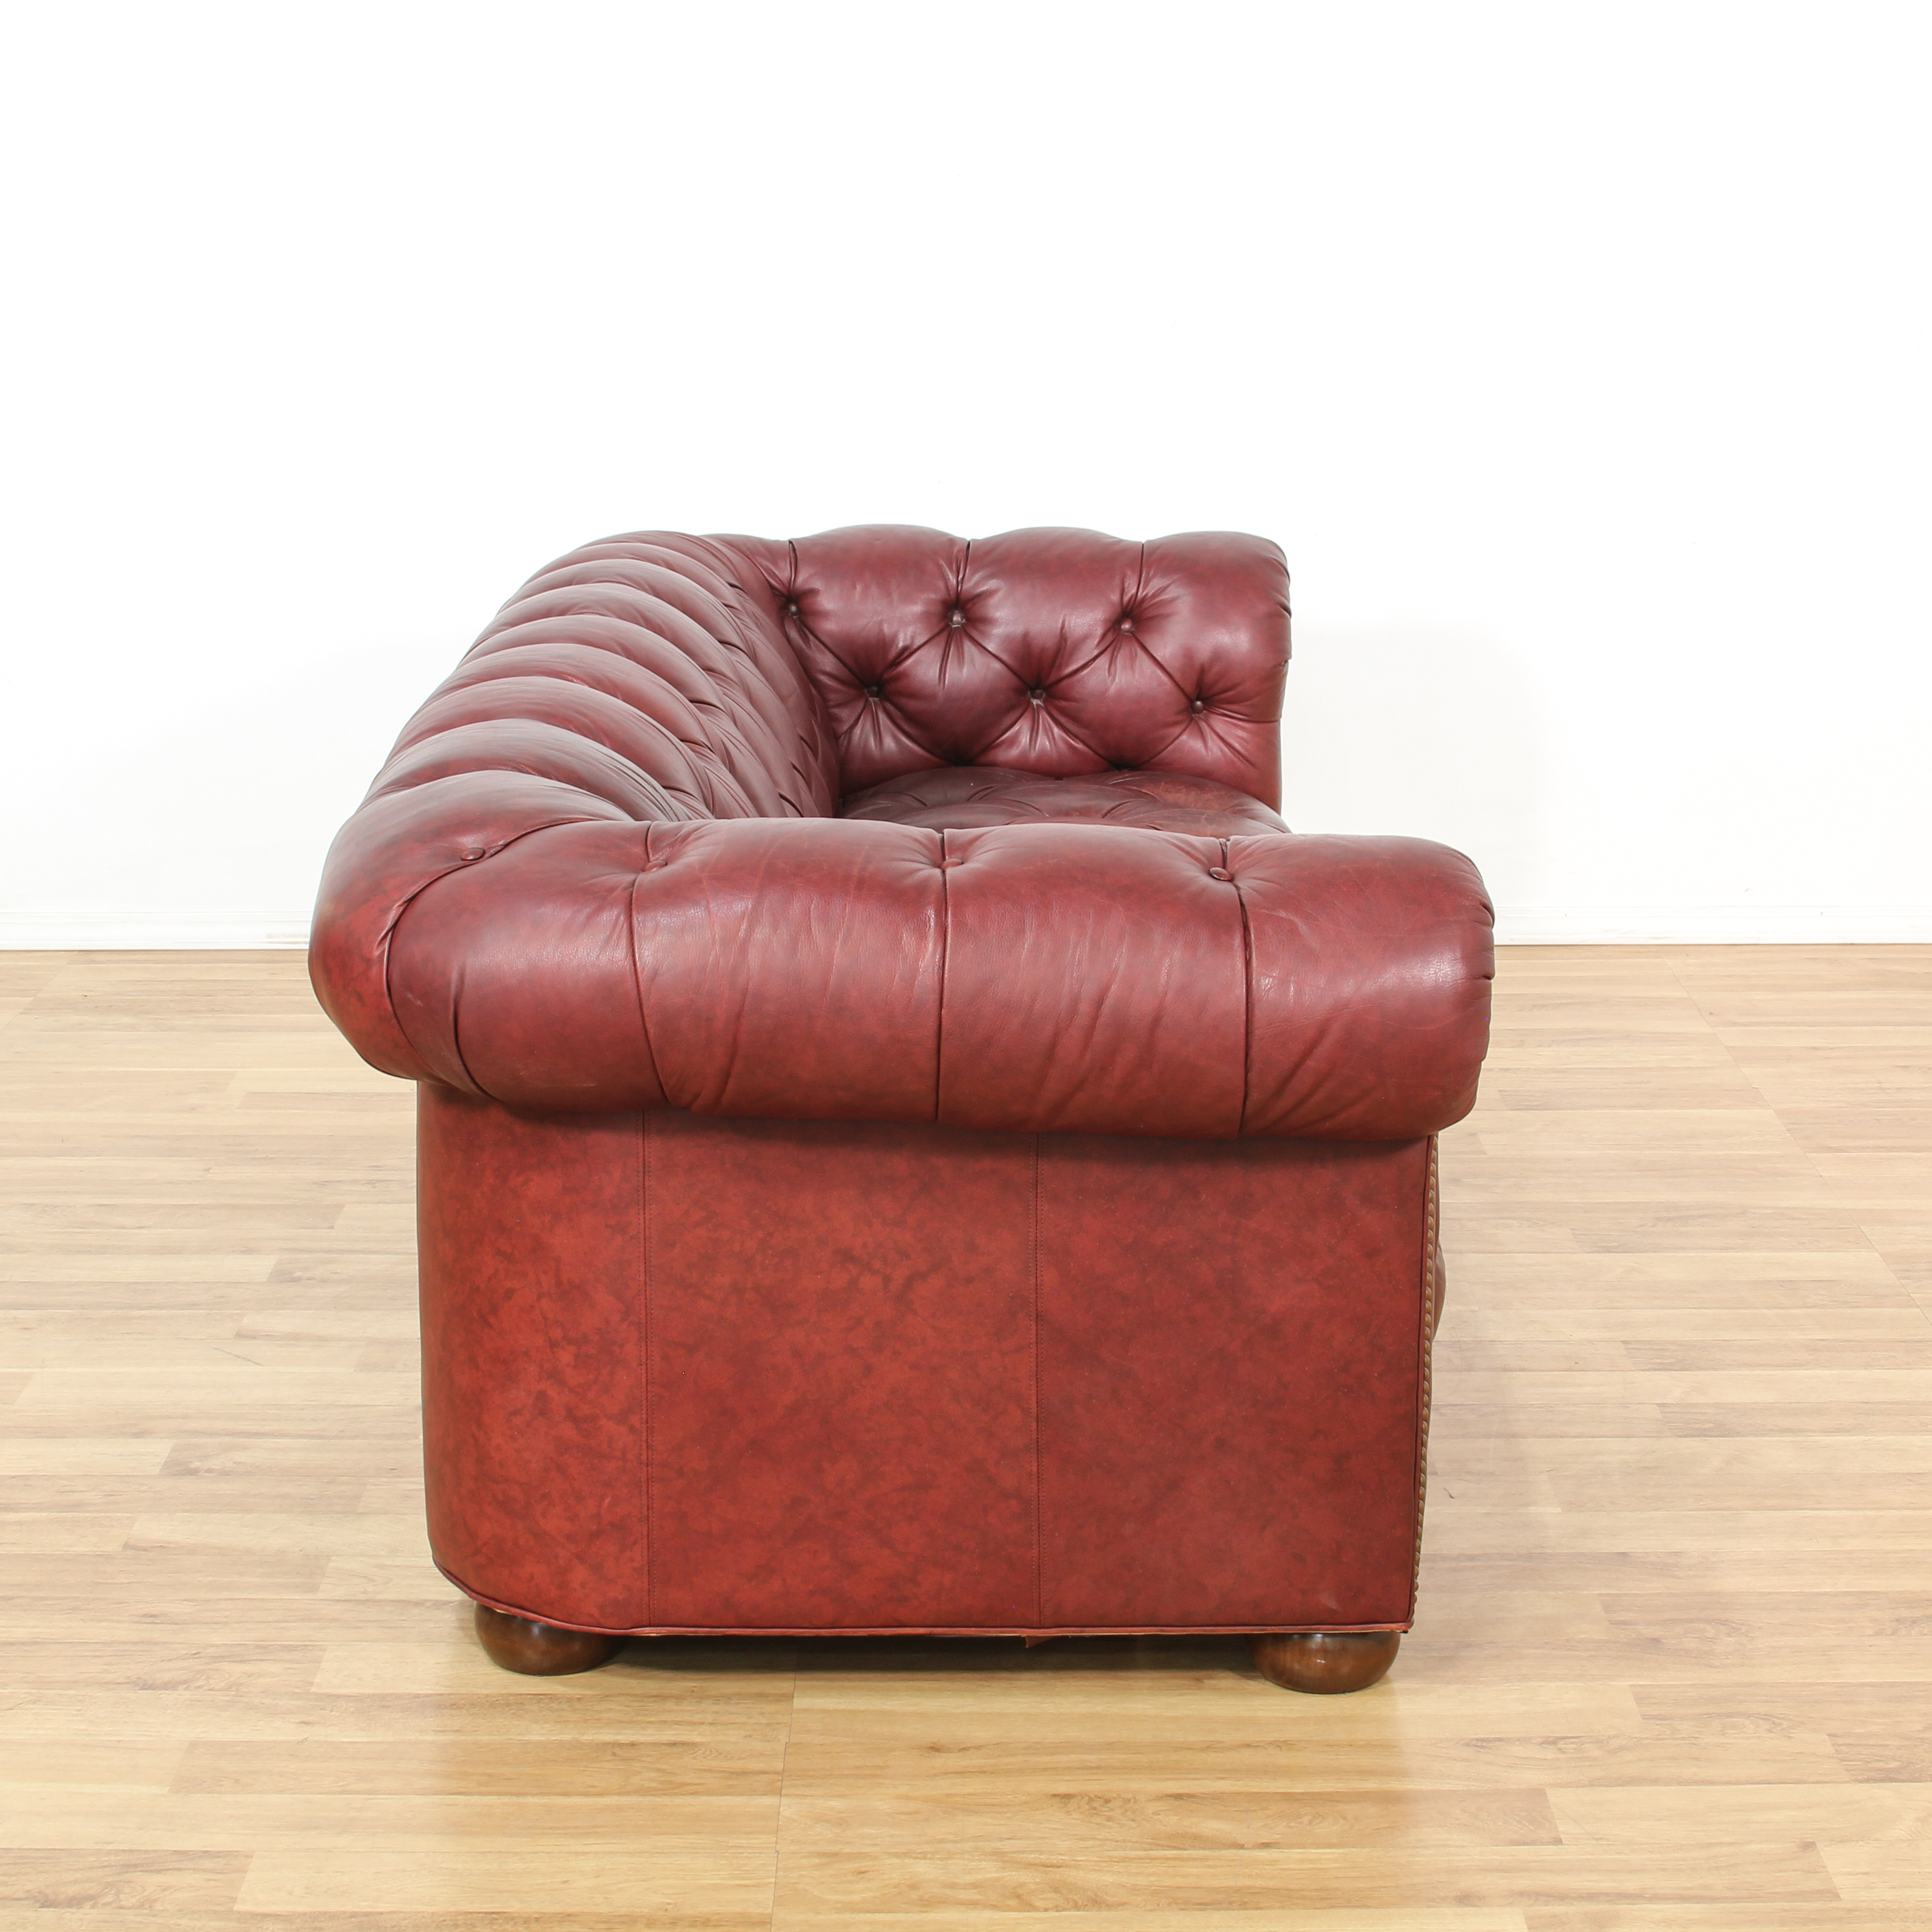 burgundy leather sofa and loveseat low profile tufted vintage furniture